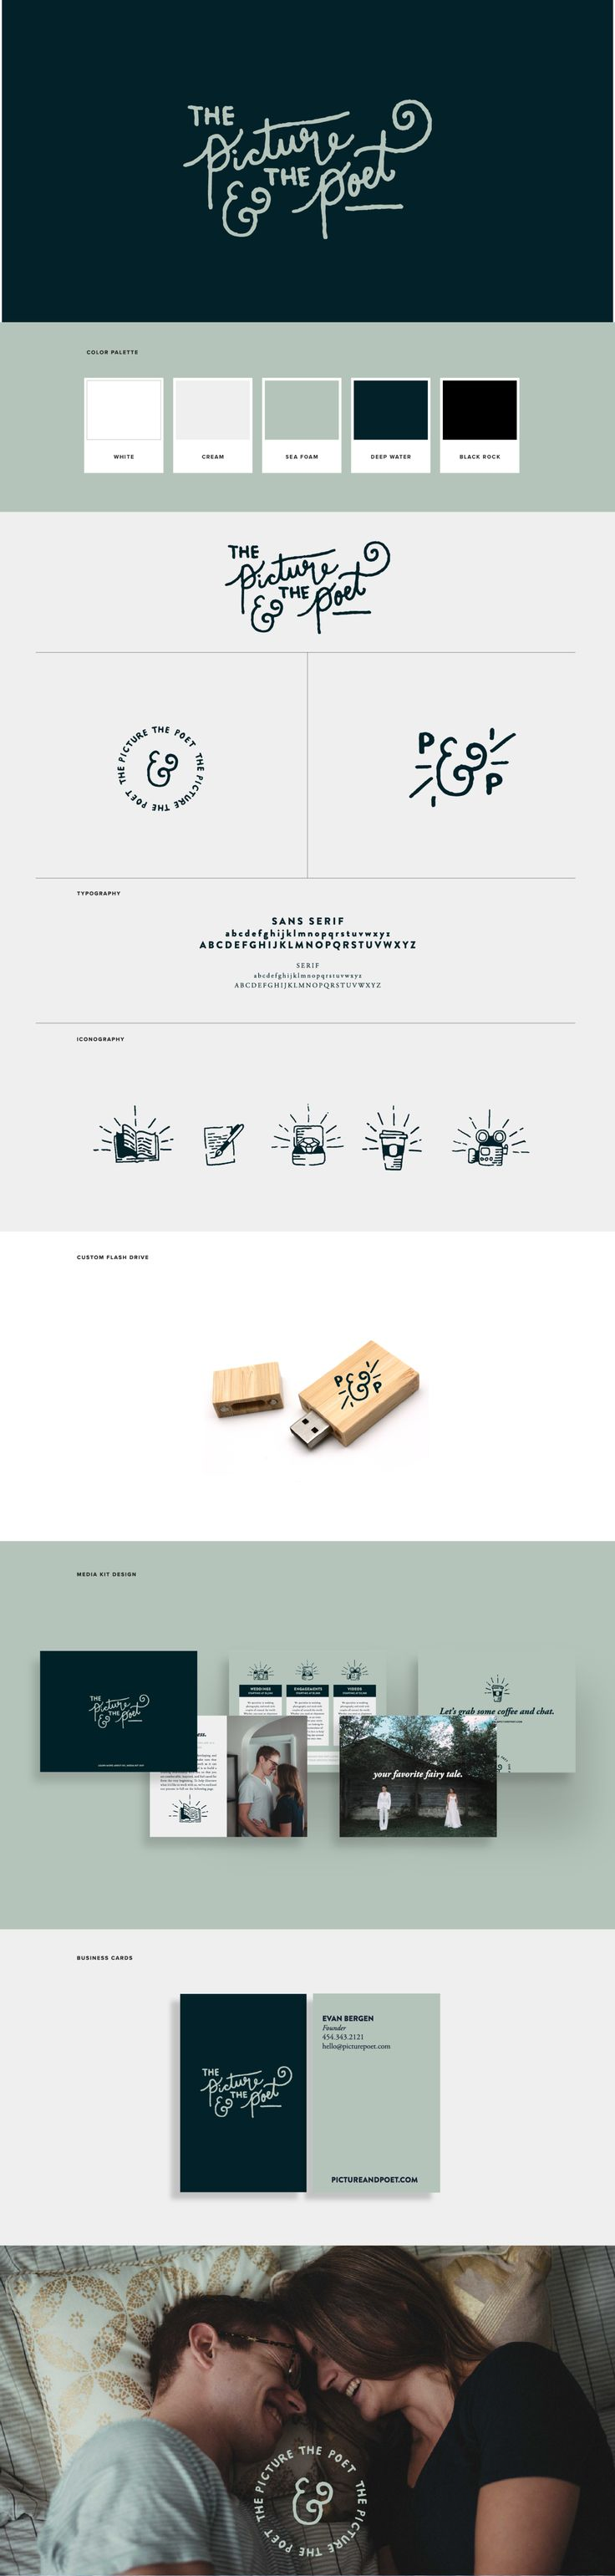 Wedding Photography Branding for The Picture & The Poet by Dynamo Ultima